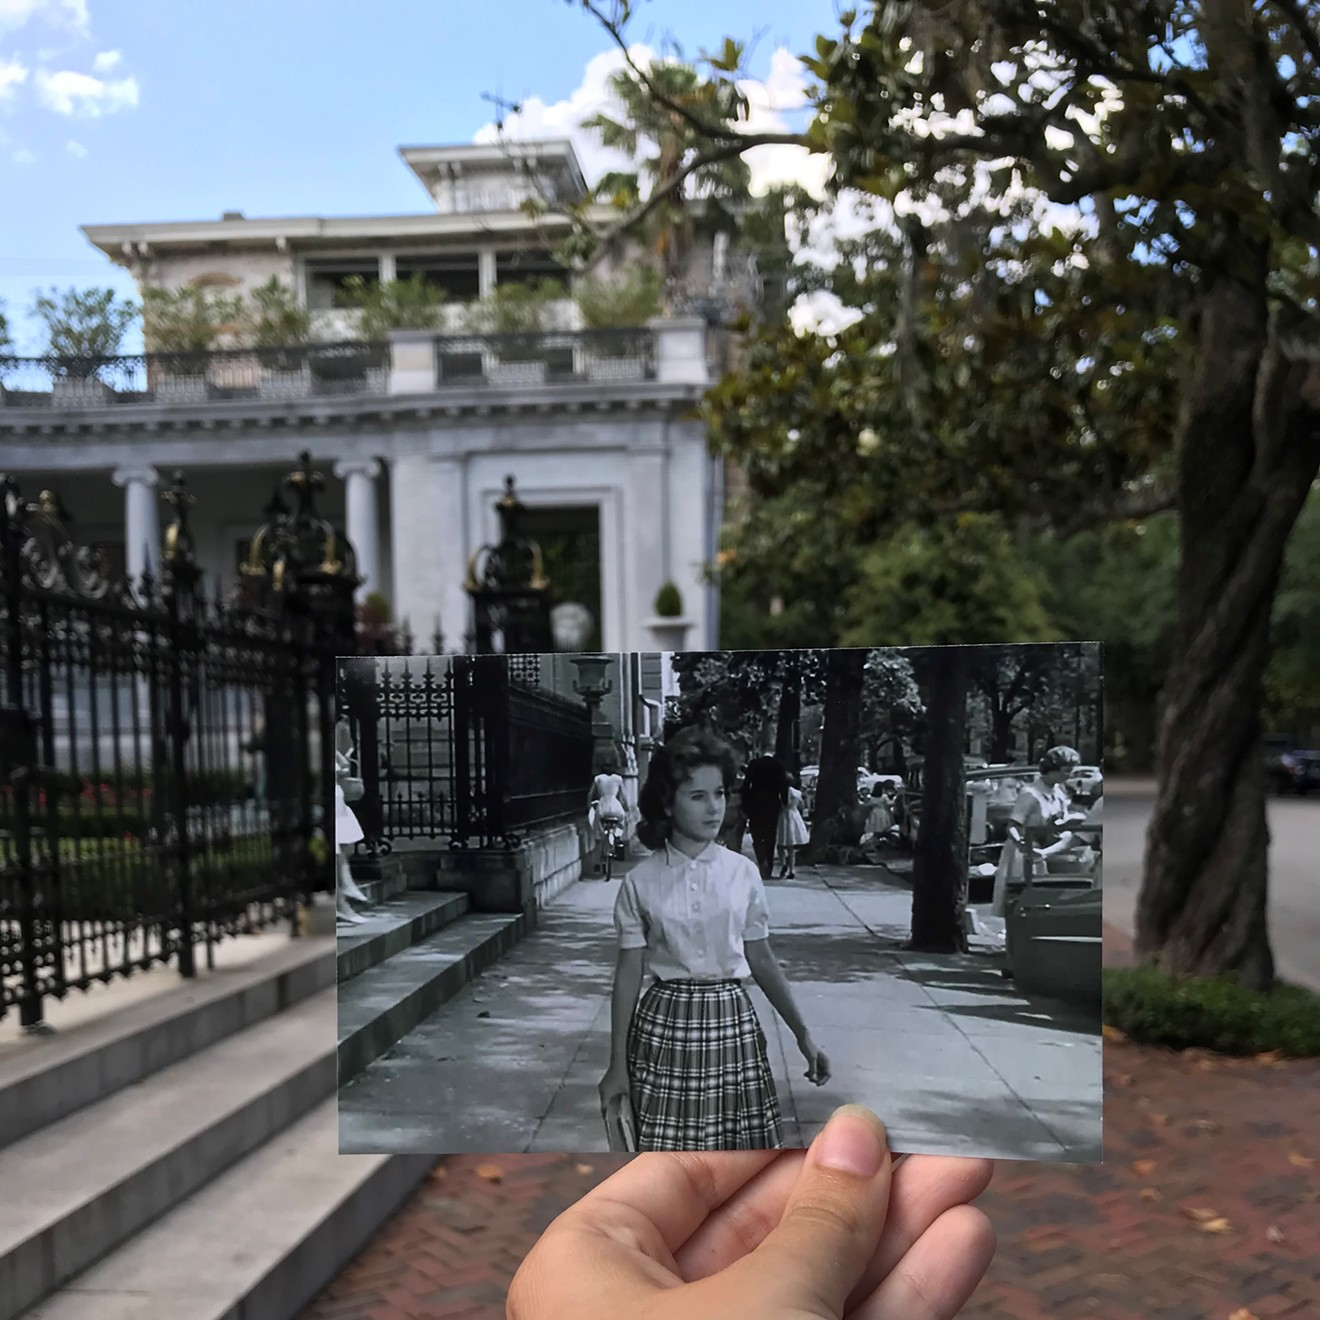 """Last year's photo contest first place winner was Cecilia Morris with the placement of this still from the 1962 film """"Cape Fear"""" on the front steps of the Armstrong Mansion on Bull St., at the north end of Forsyth Park. The photographer's inspiration was her love of Savannah, film history and historic preservation as a means to educate, enrich and benefit the community's culture."""